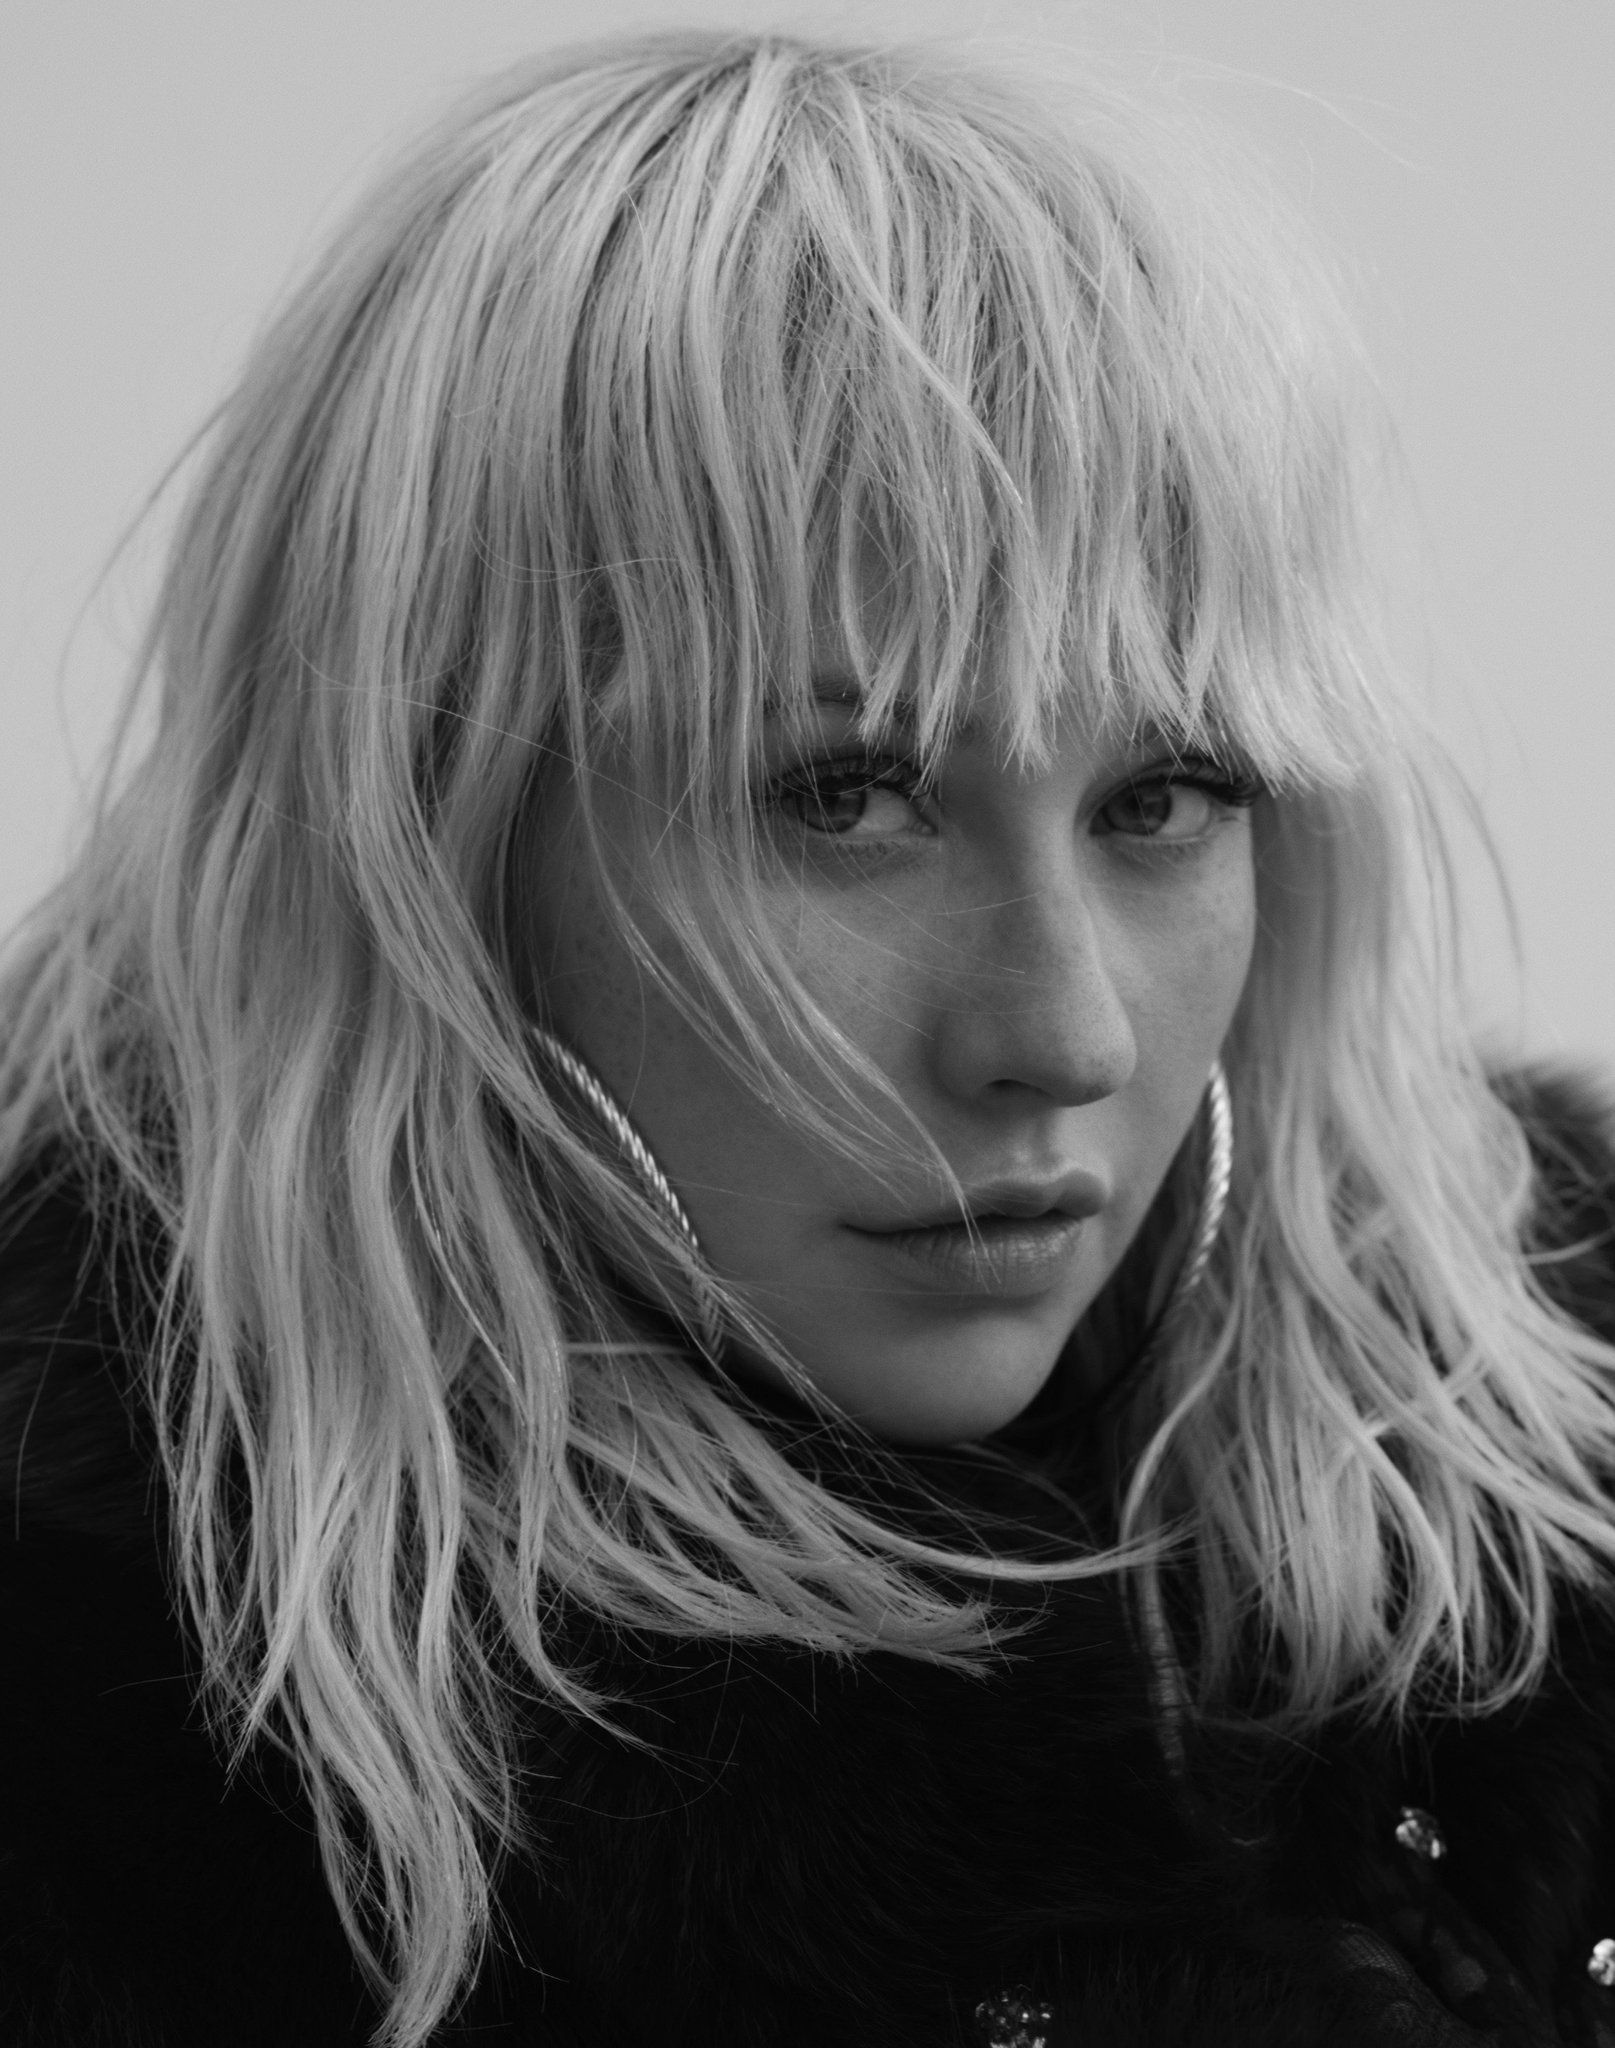 May 20th. @BBMAs. @xtina. #FallInLine. #xtinademi_bbmas https://t.co/Kh71cboxob